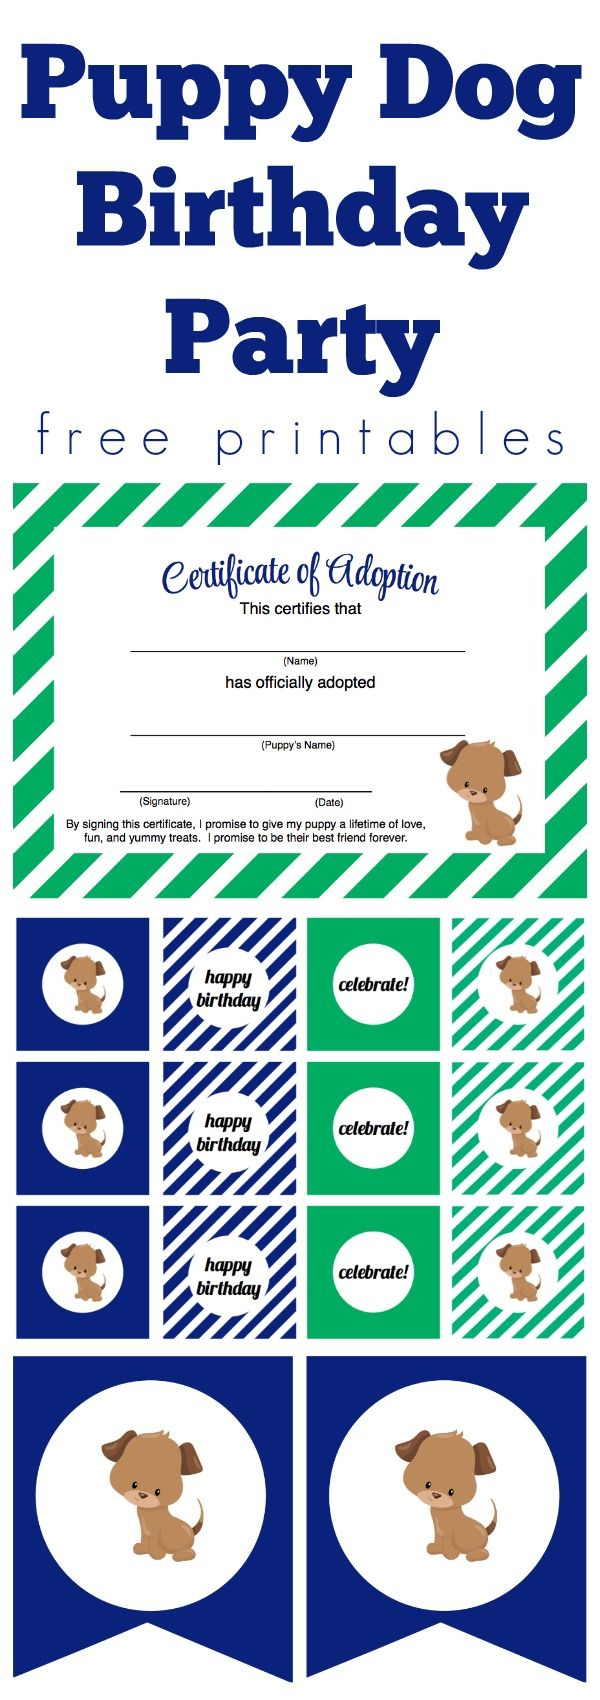 Adorable puppy dog birthday party (or pawty!) free printables